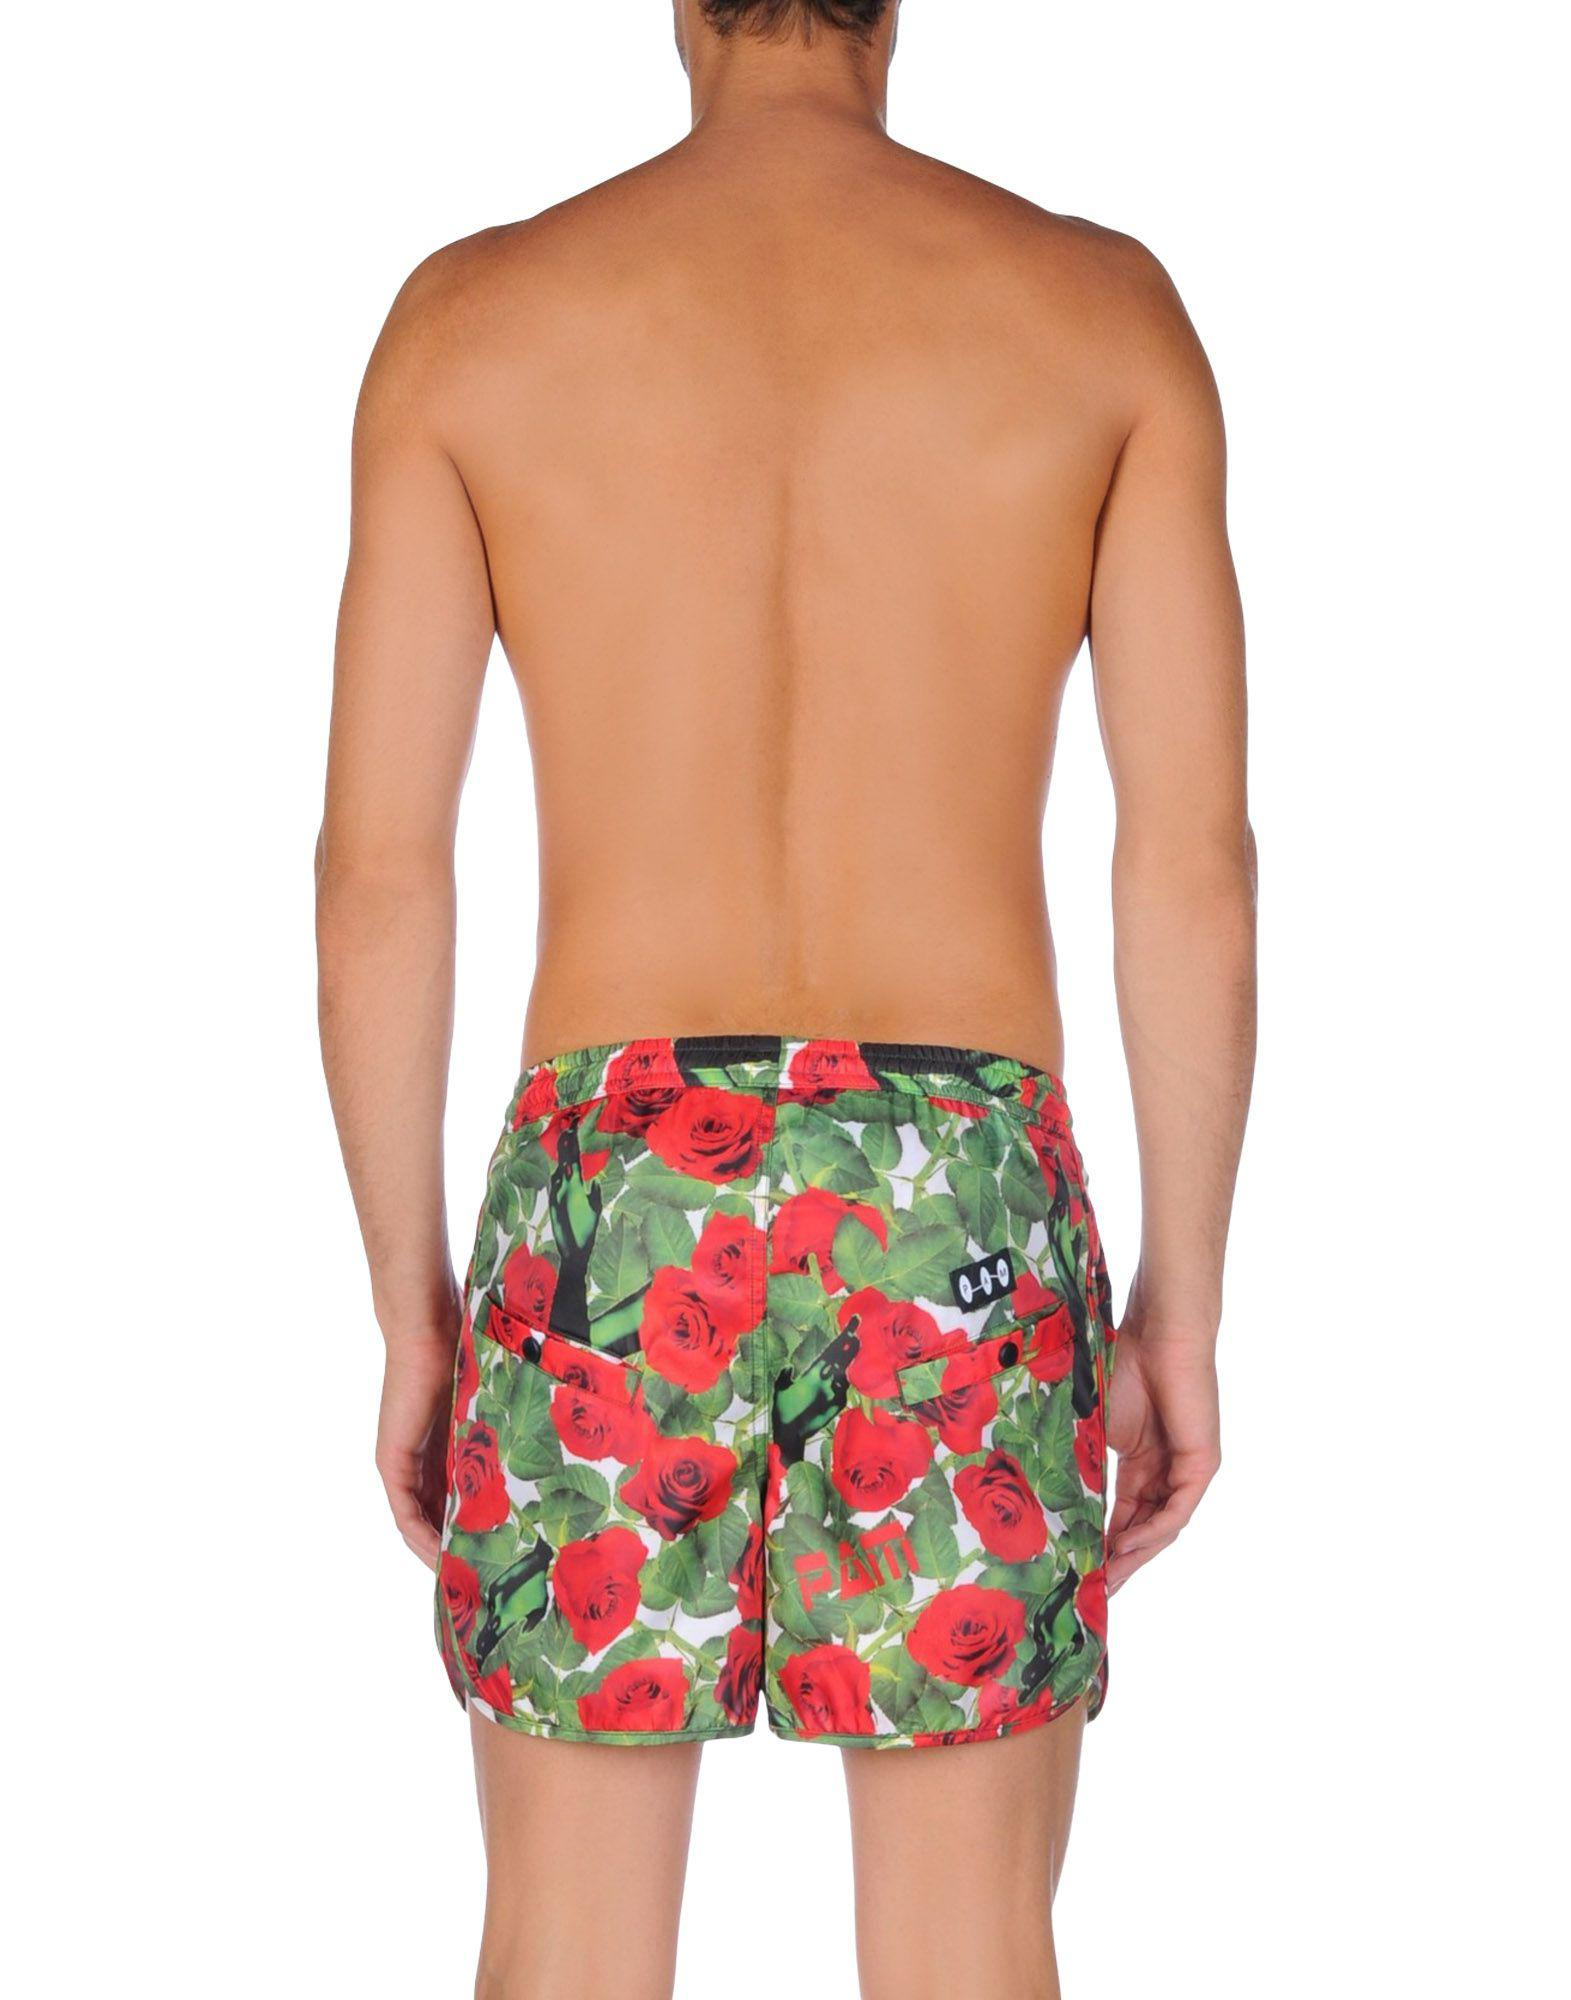 SWIMWEAR - Swimming trunks P.A.M. PERKS AND MINI Finishline Cheap Price Manchester wuV3AH